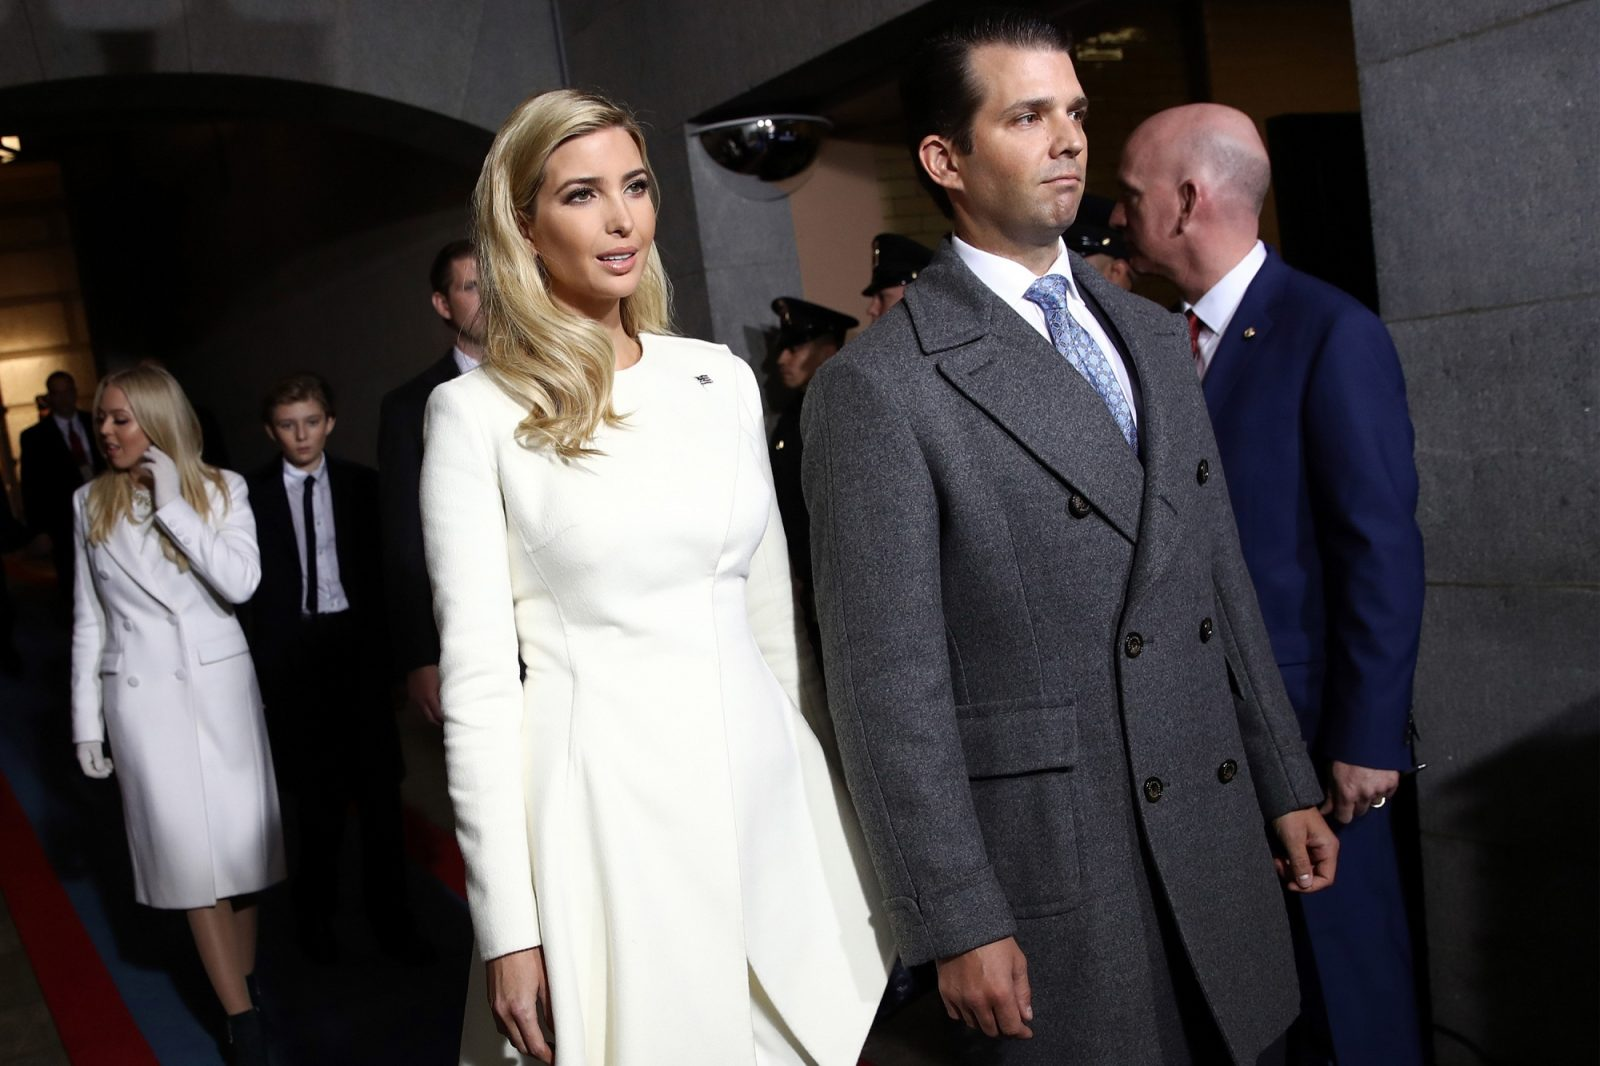 Ivanka and Donald Trump Jr. Were Alm